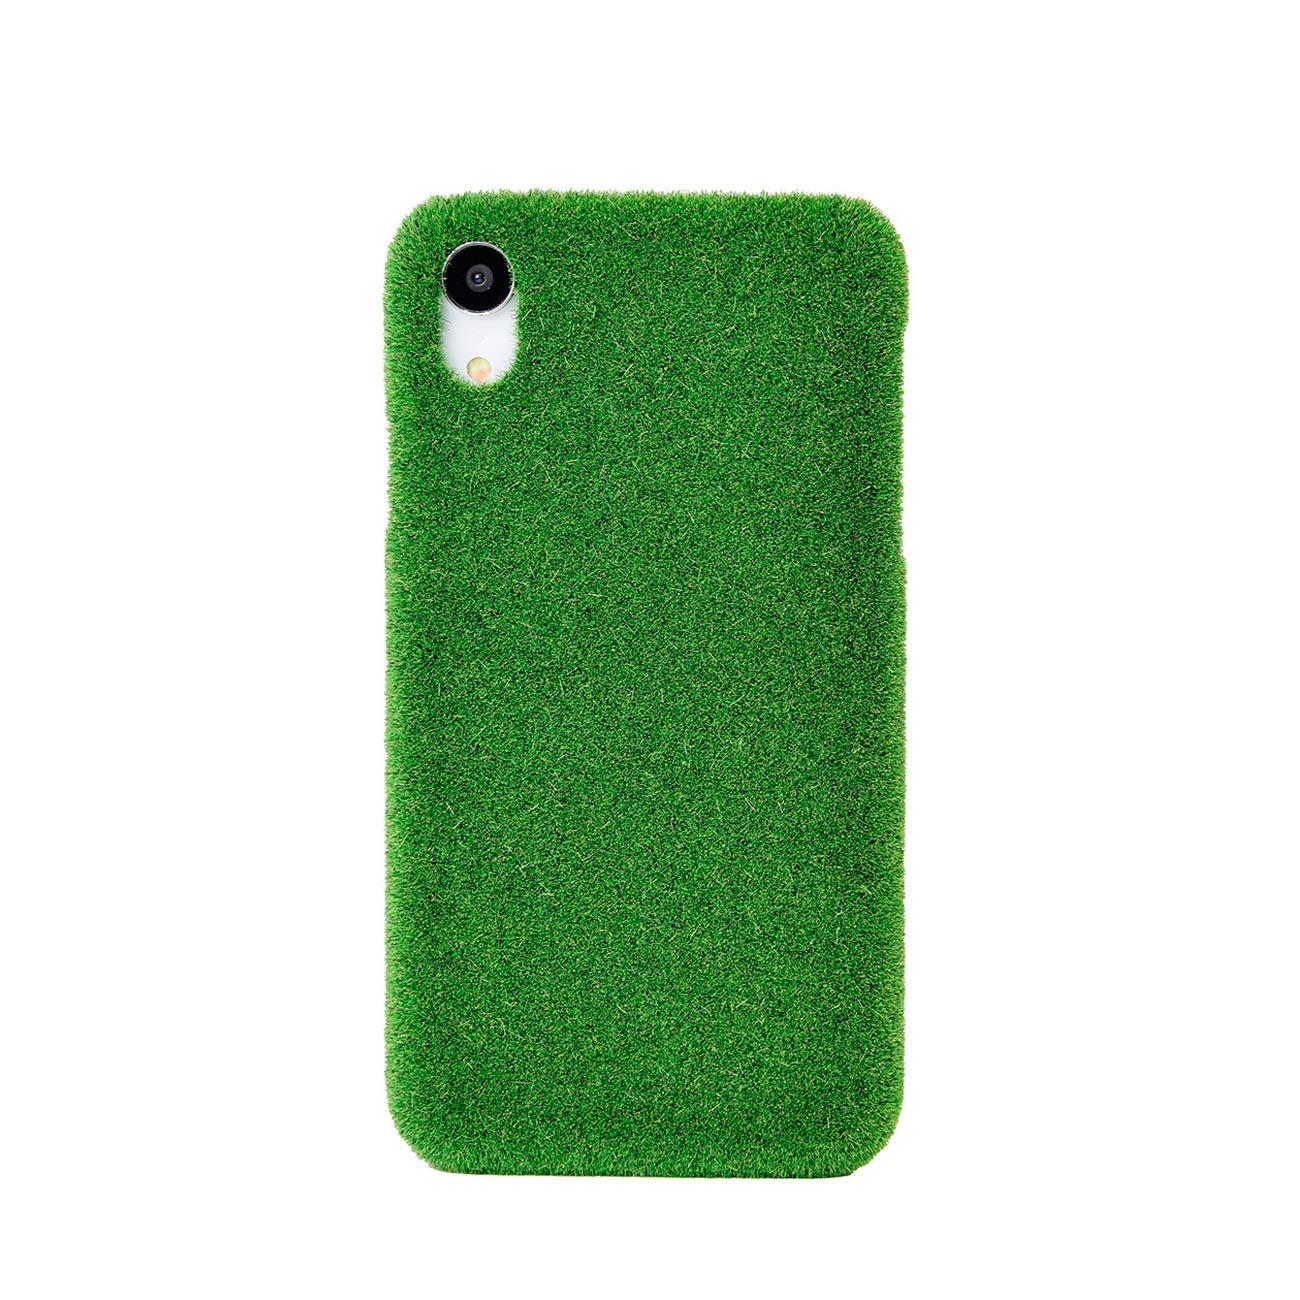 a3b56fcc2d18 Amazon.com  Shibaful Long-Lasting Real-Grass-Texture Green Turf Case for  Apple iPhone XR - Made in Japan  Yoyogi Park   Cell Phones   Accessories